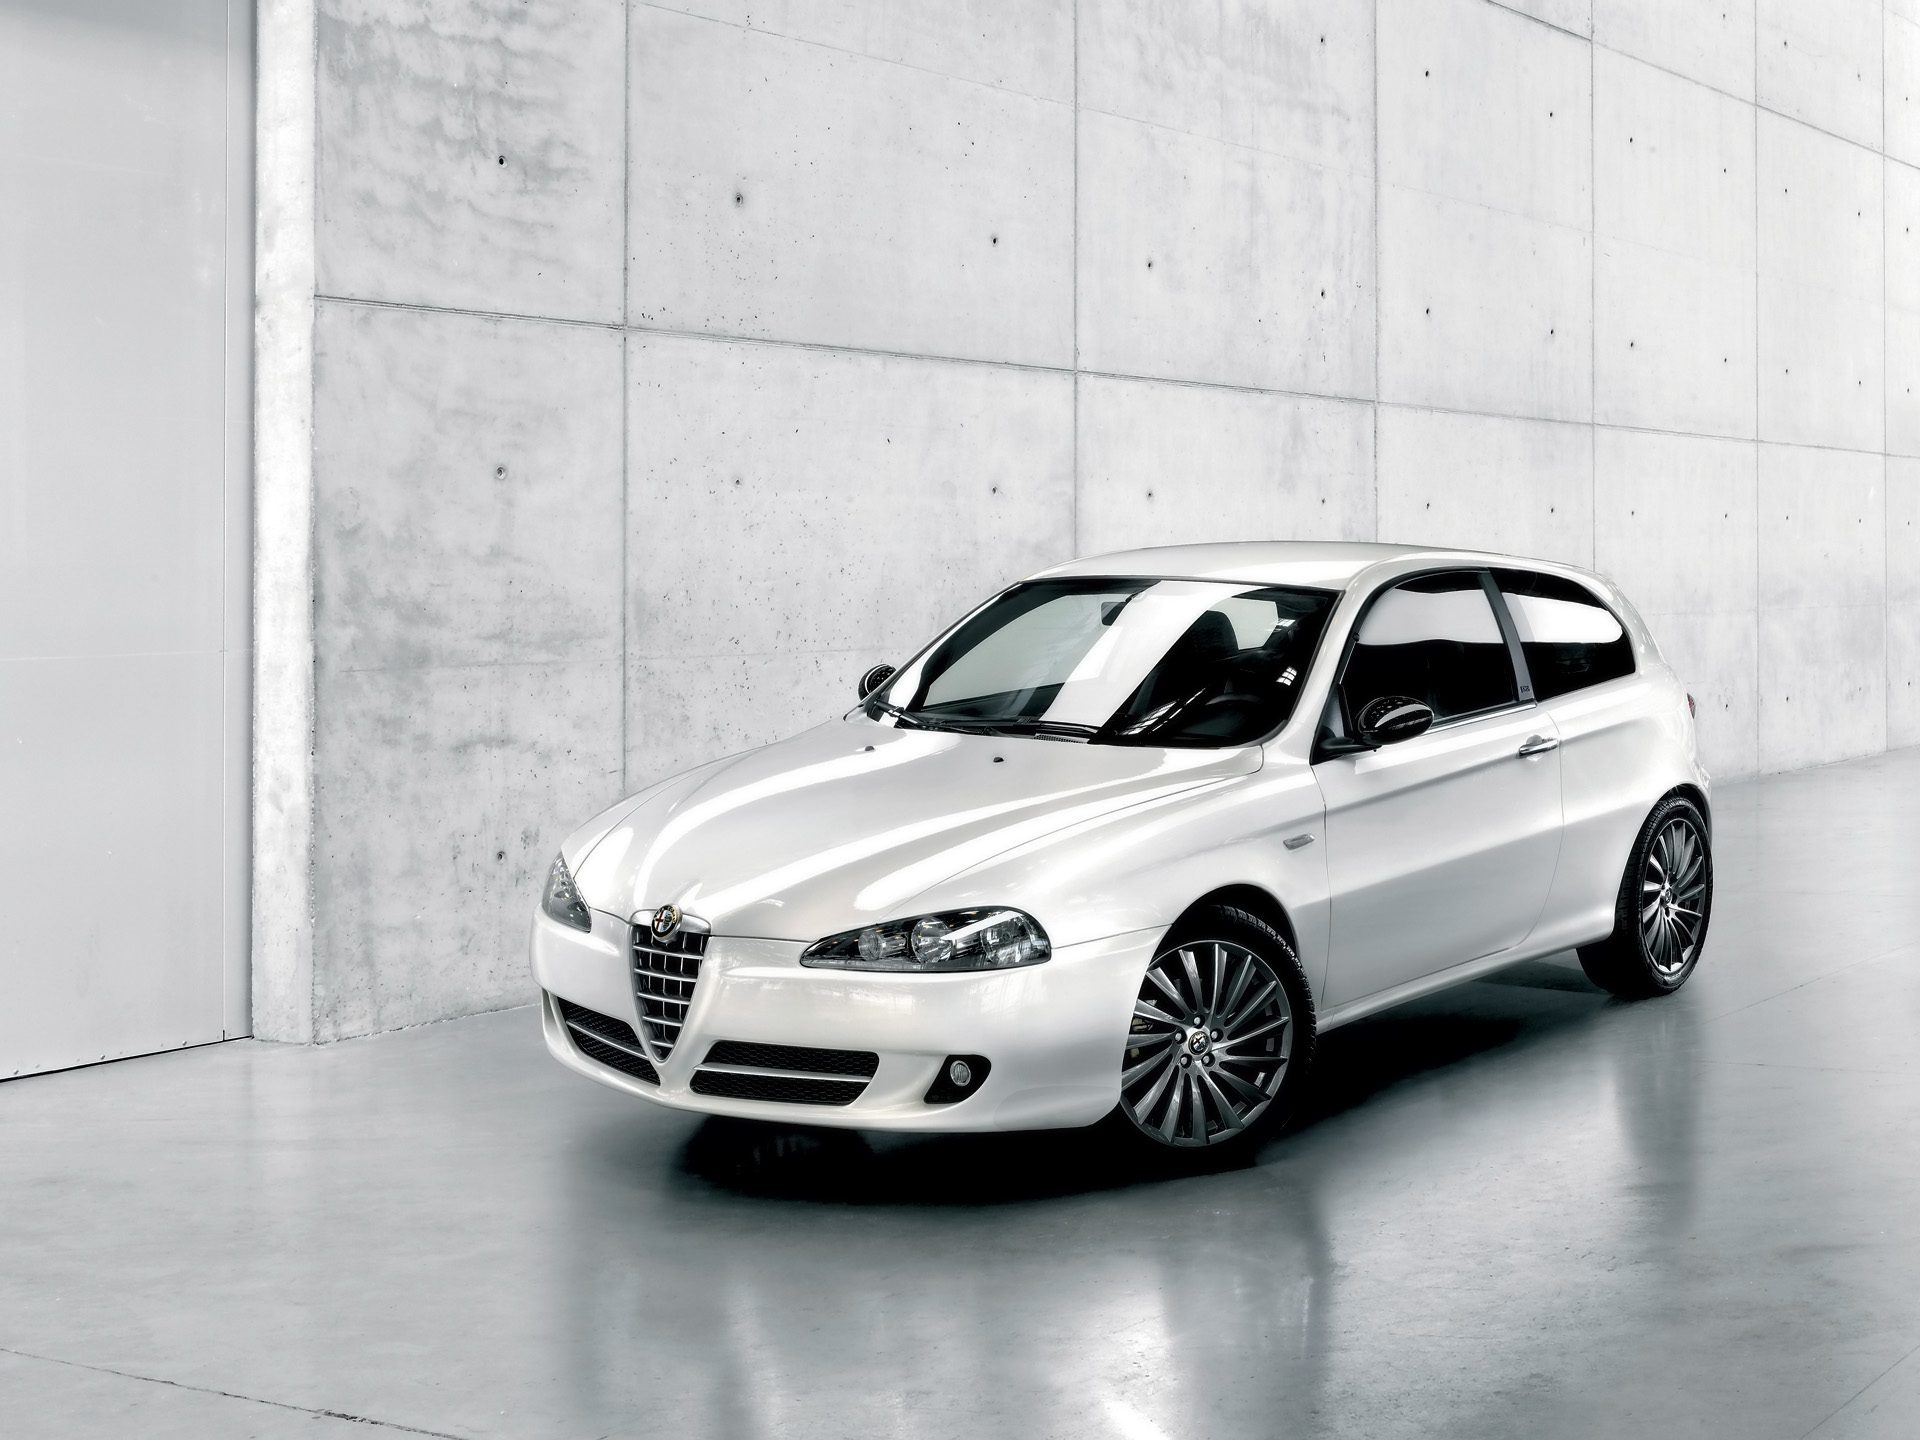 alfa romeo 147 white - photo #38